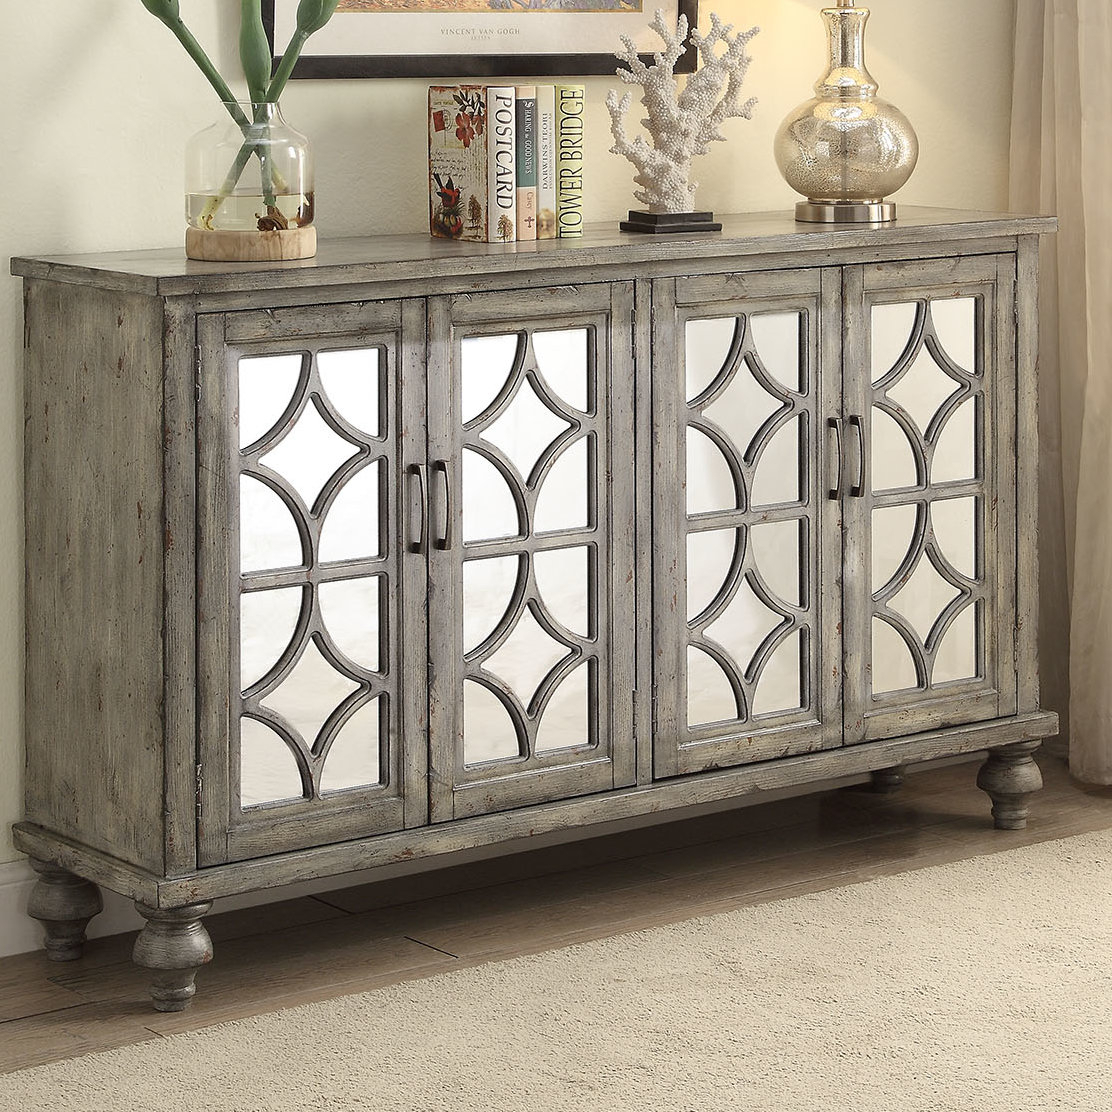 Inspiration about 4 Door Accent Cabinet | Wayfair Intended For Latest Kara 4 Door Accent Cabinets (#6 of 20)